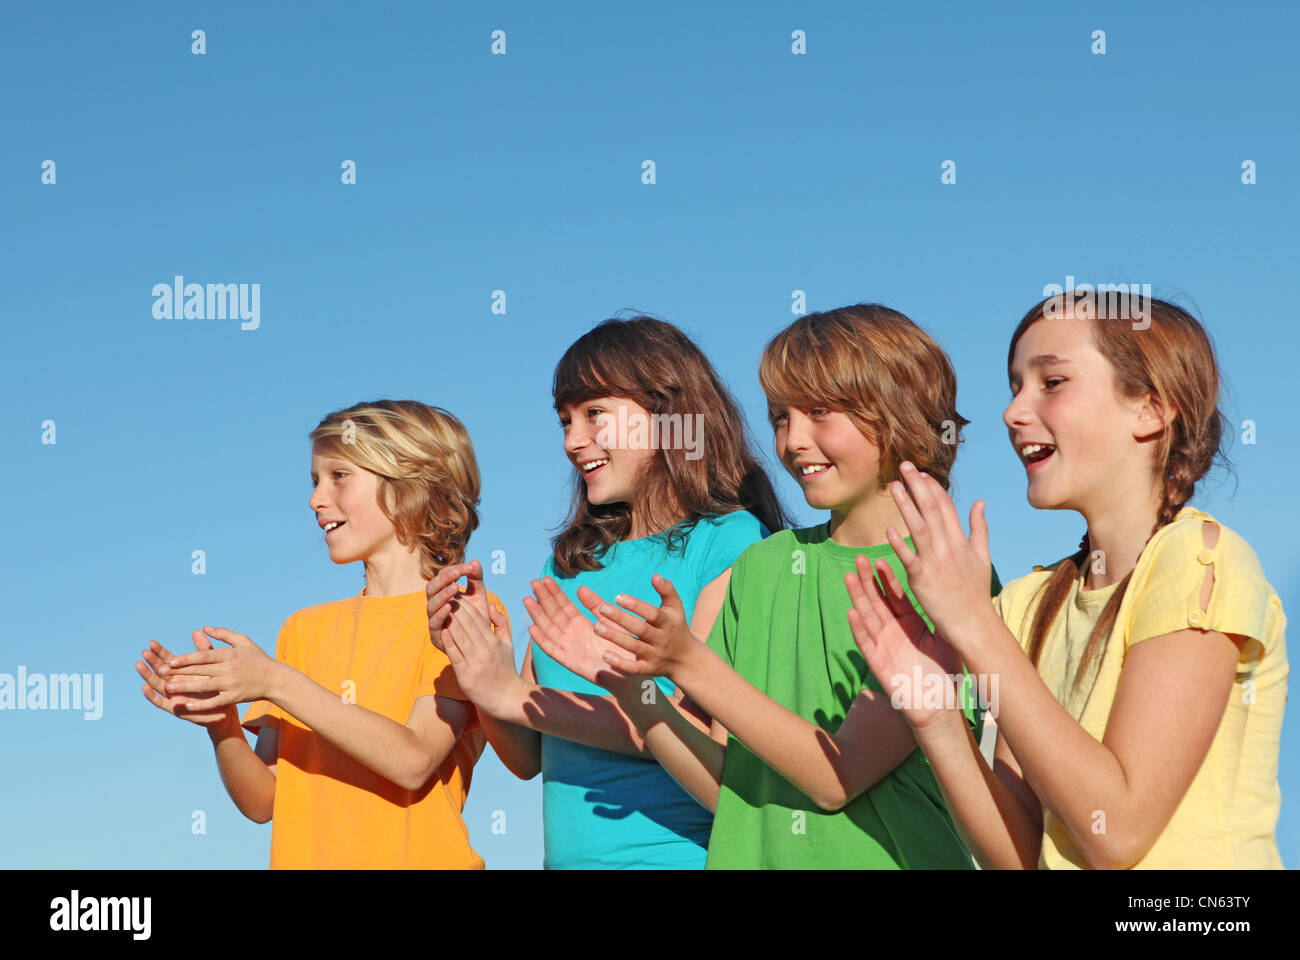 group of kids, children, or supporters clapping - Stock Image